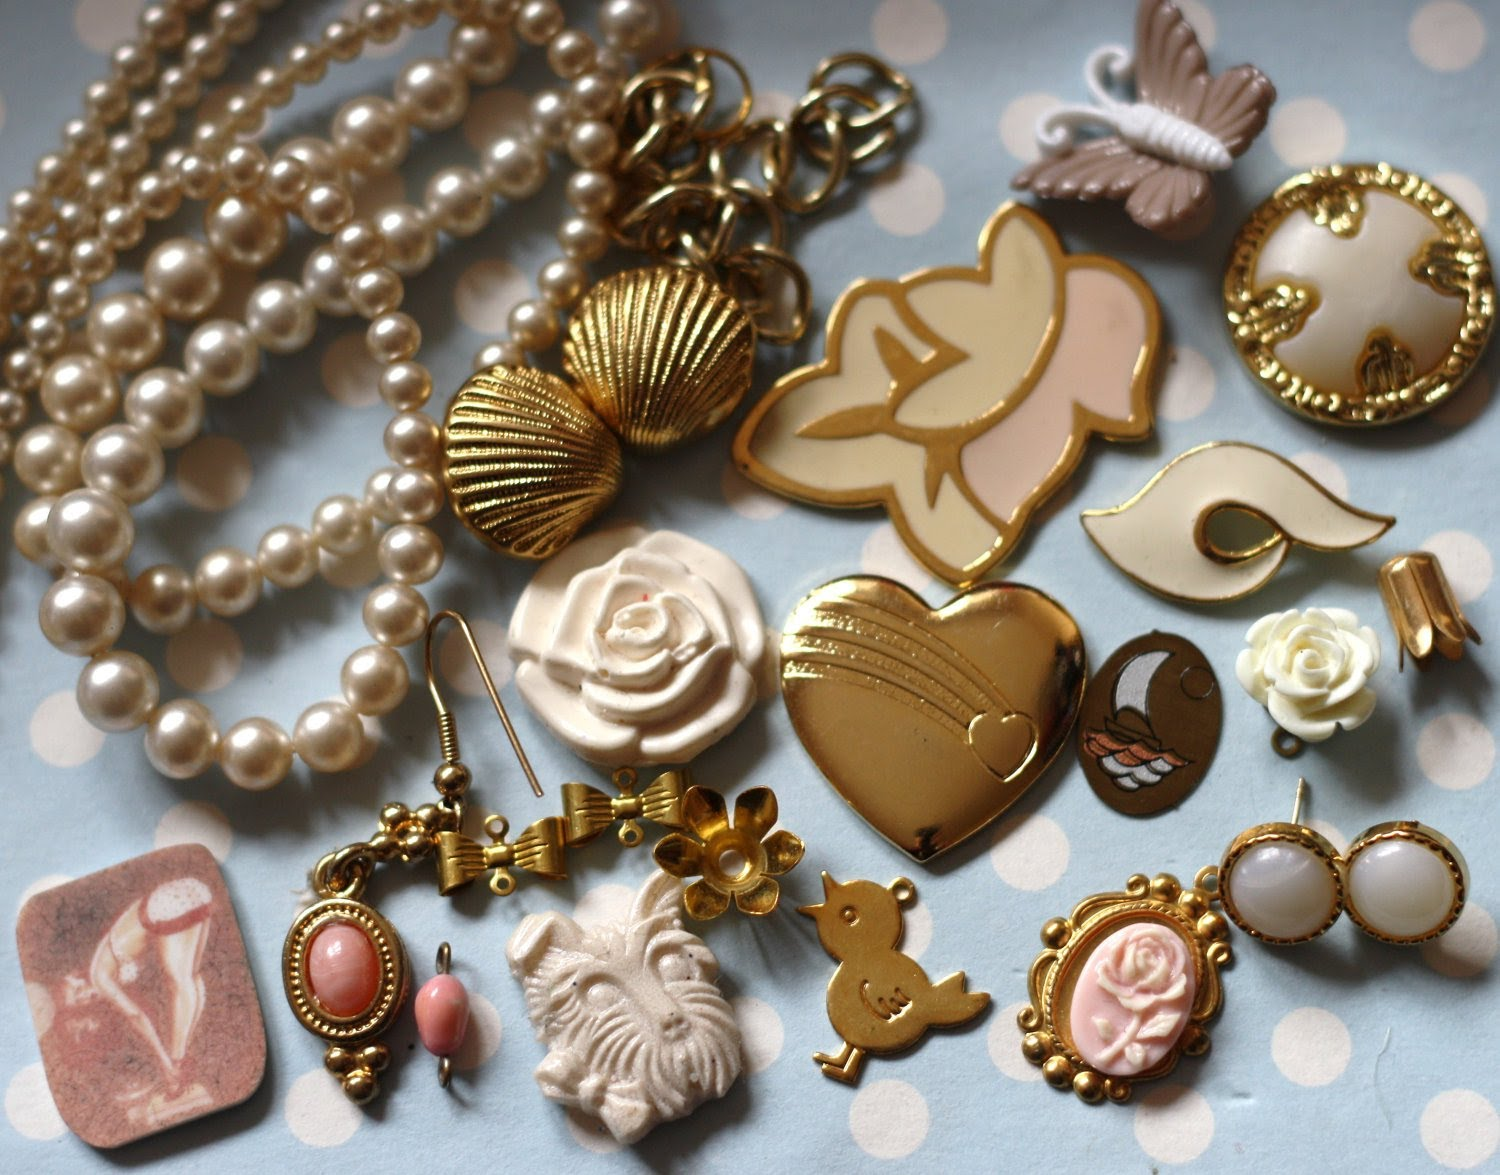 Vintage Jewellery – Jewellery From Olden Occasions For The Time Being